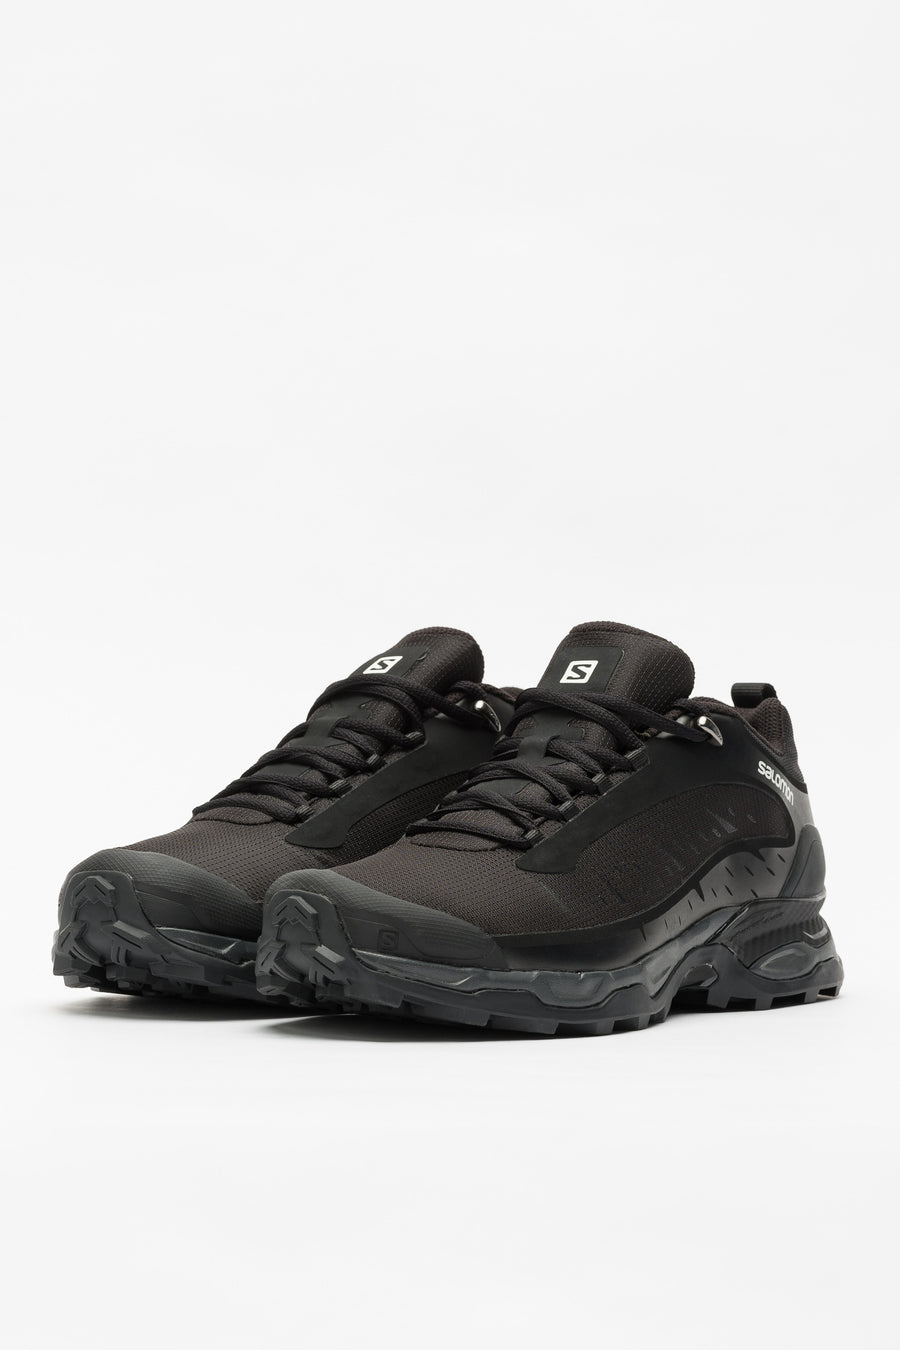 SALOMON S/LAB Shelter Low ADV in Black/Black/Phantom - Notre